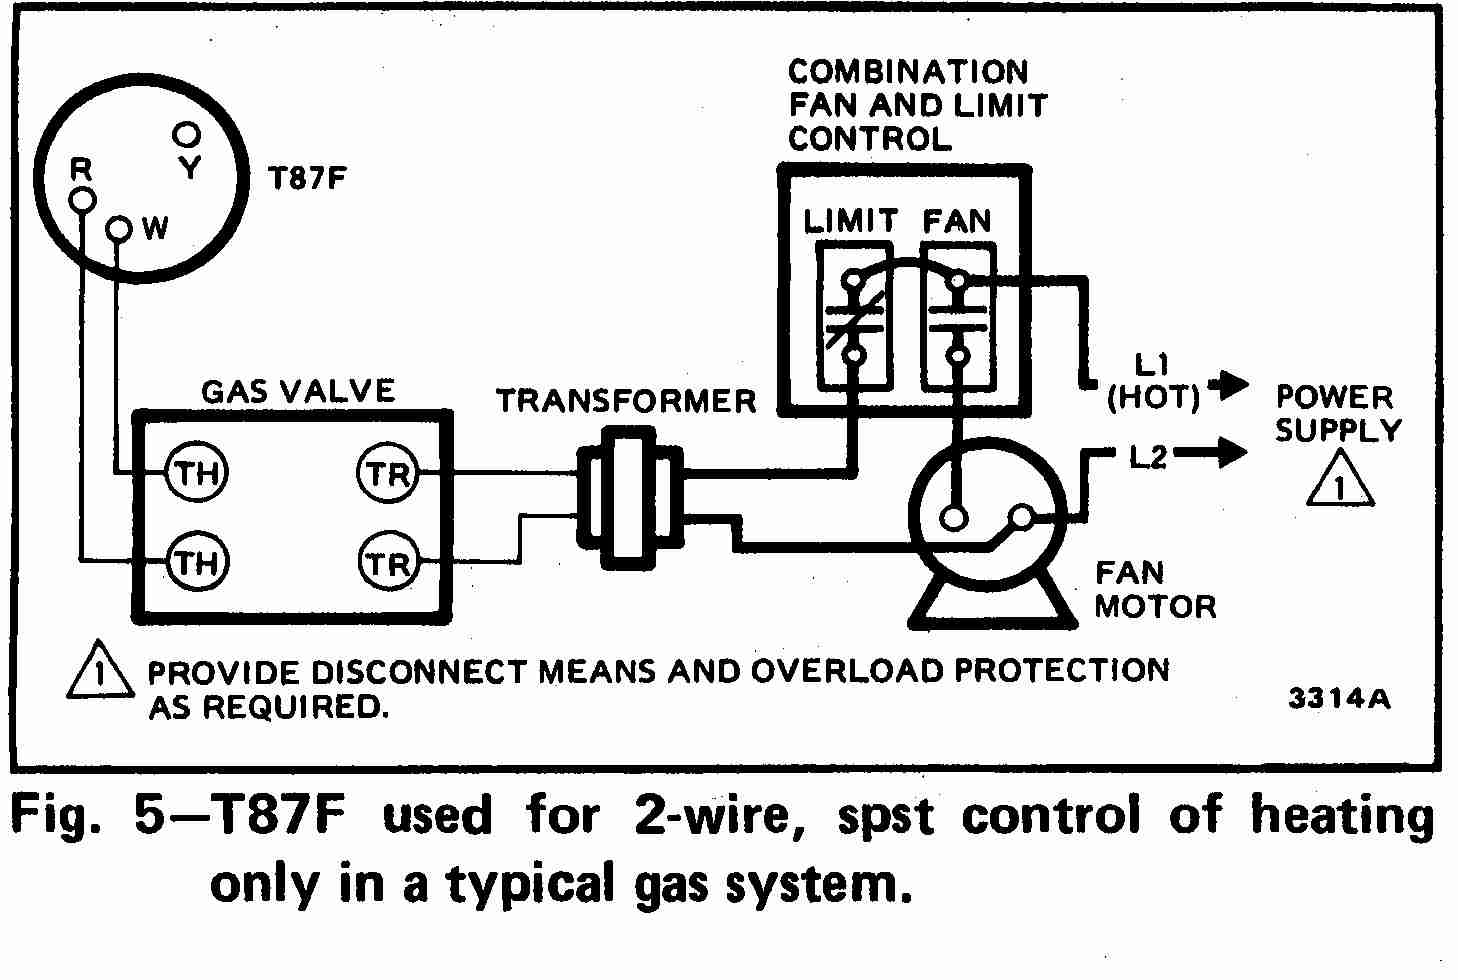 TT_T87F_0002_2Wg_DJF room thermostat wiring diagrams for hvac systems dayton gas unit heater wiring diagram at gsmx.co